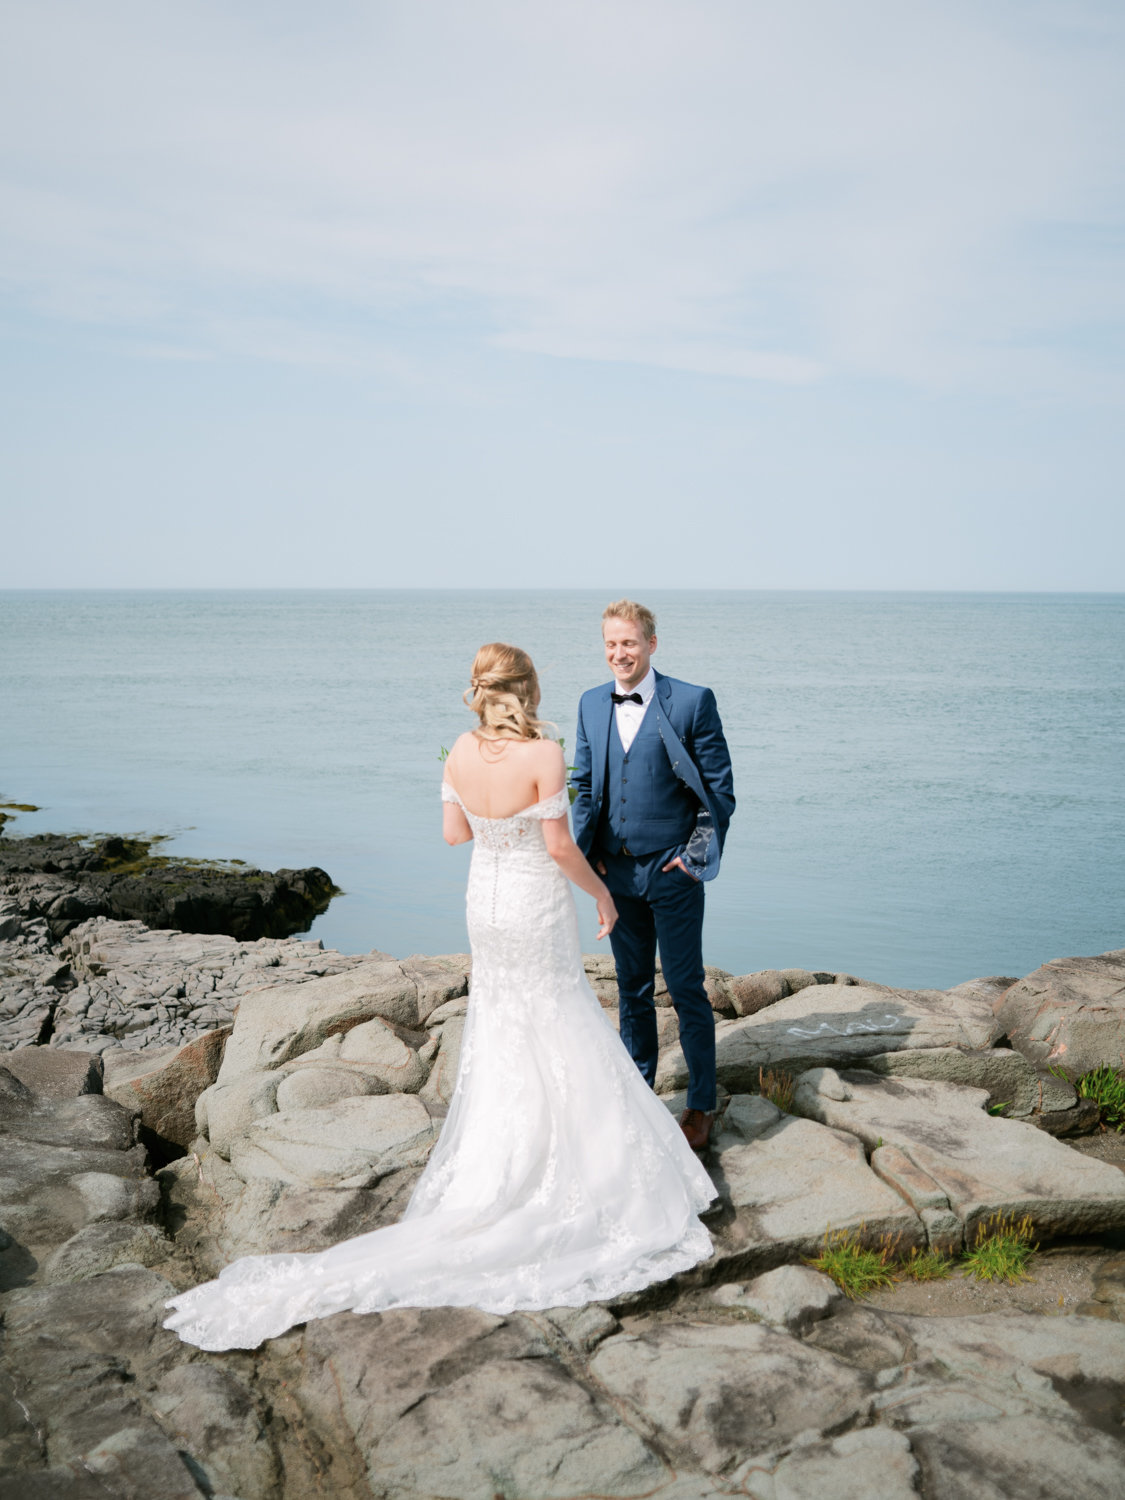 Jacqueline Anne Photography - amanda and brent-23